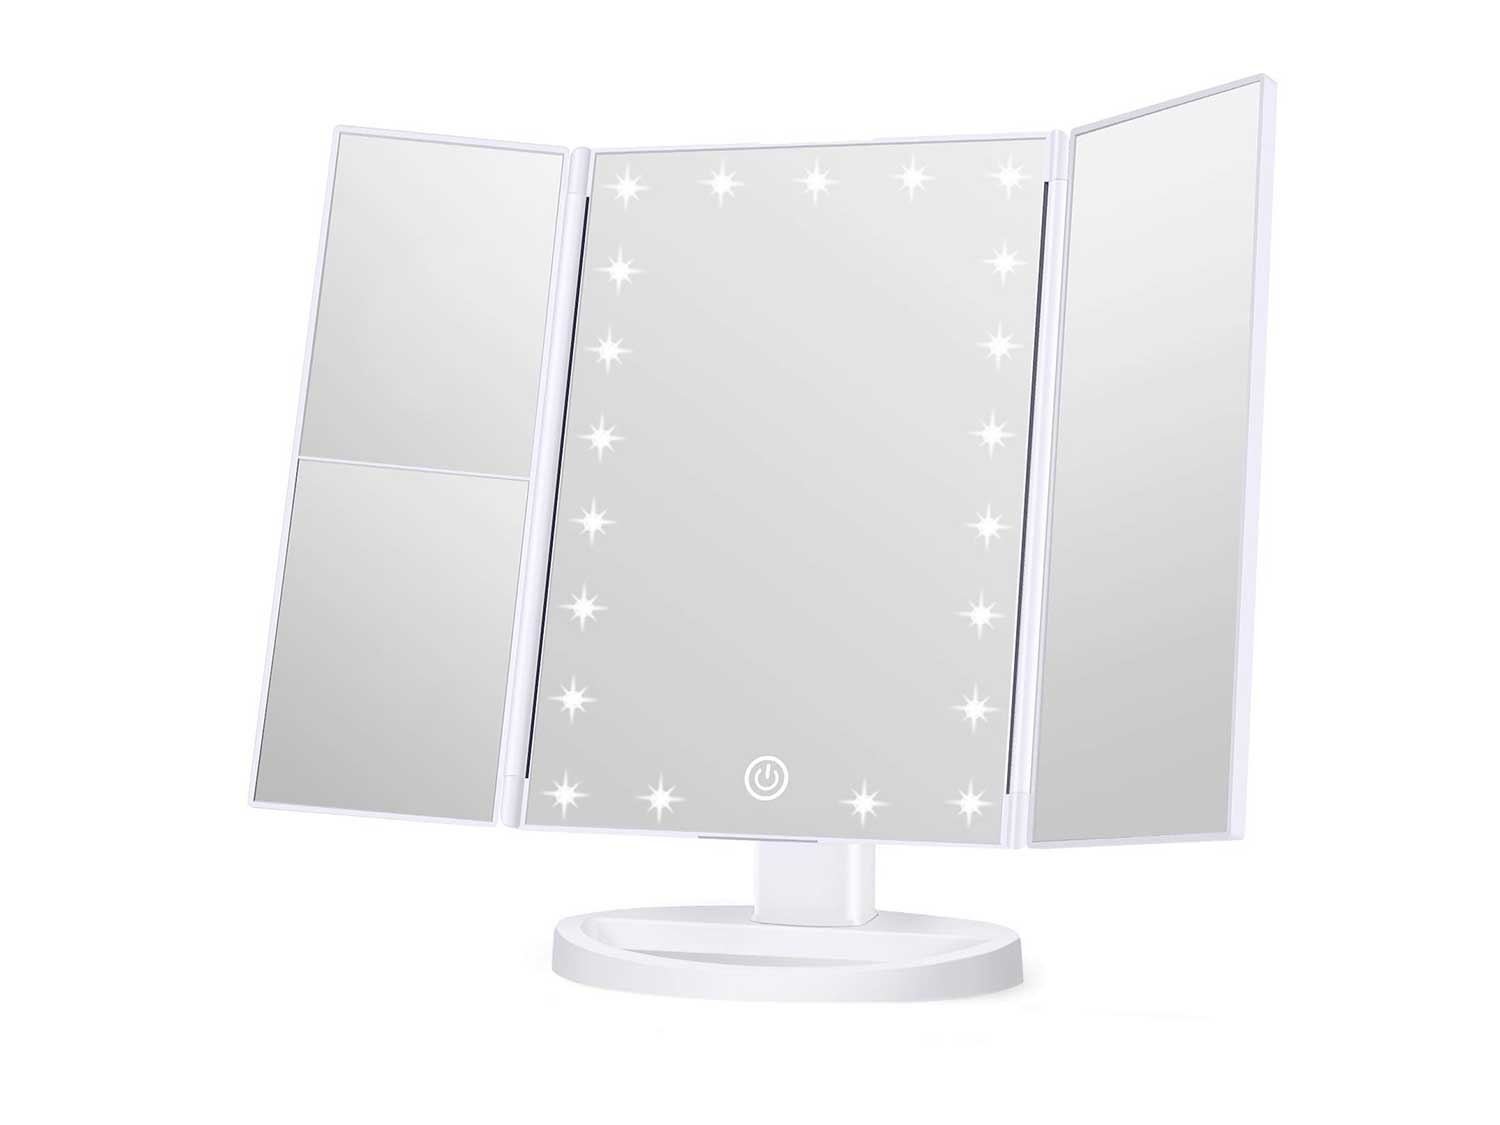 Wondruz Makeup Mirror Vanity Mirror with Lights, 1x 2X 3X Magnification, Touch Screen Switch, Dual Power Supply, Portable Trifold Makeup Mirror Cosmetic Lighted Up Mirror